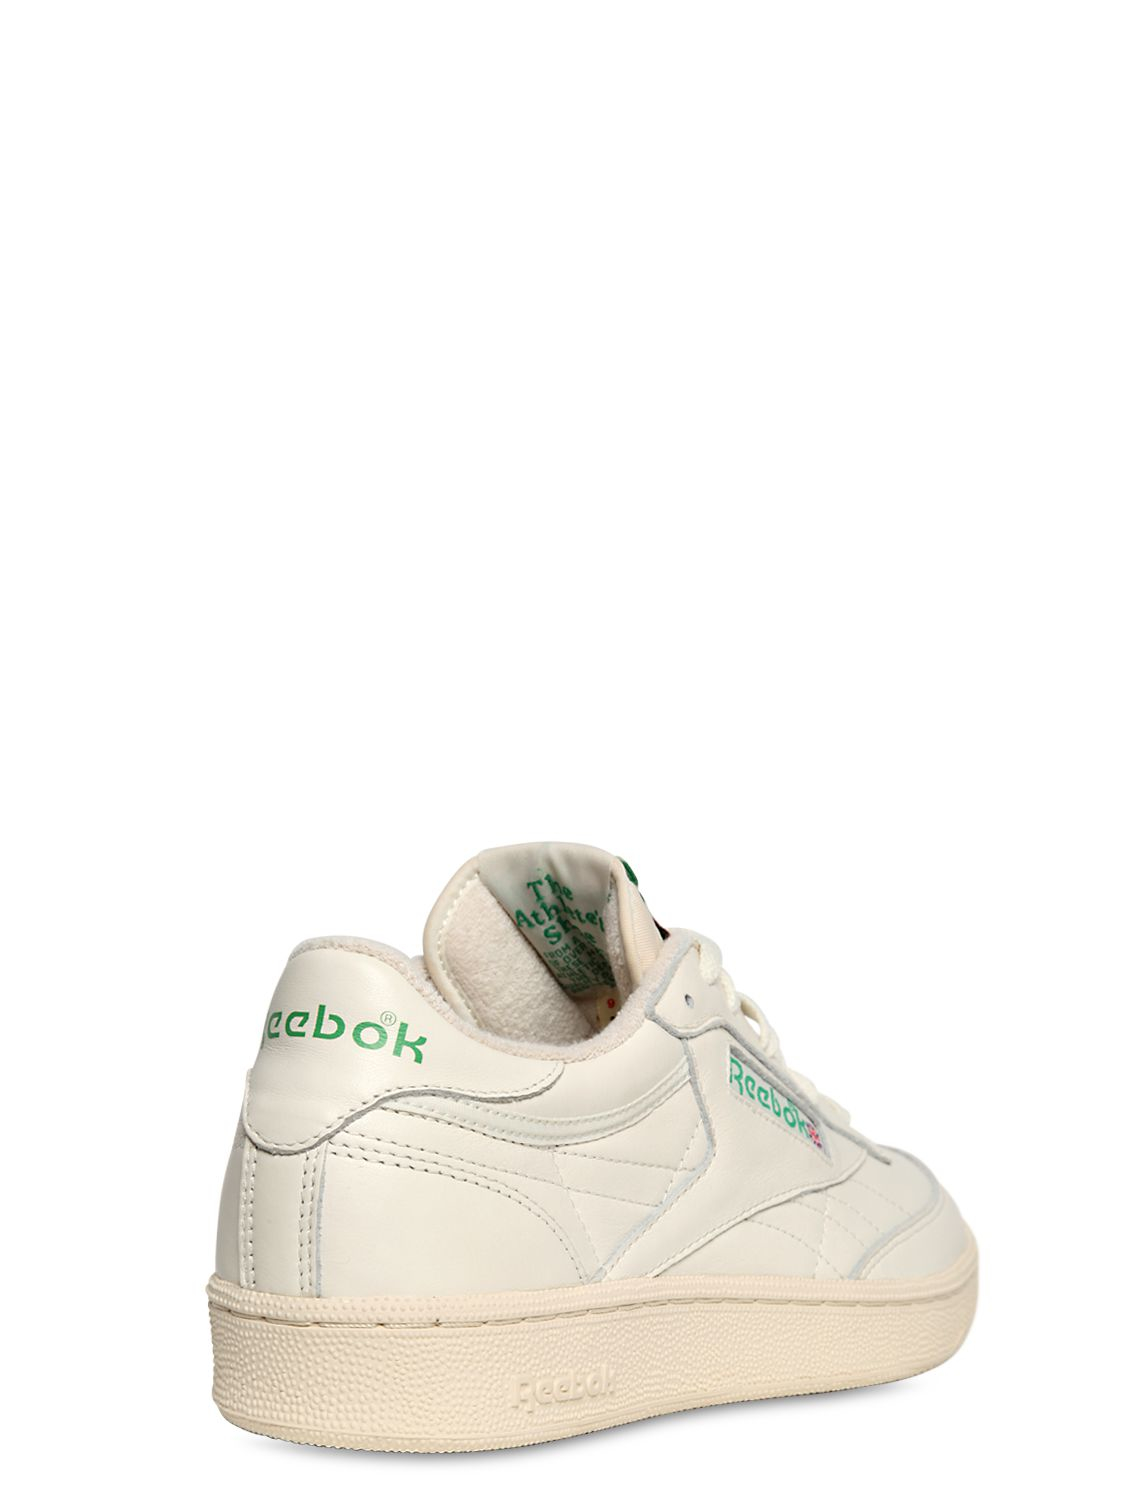 c88bfb2b631a91 Lyst - Reebok Club C 85 Vintage Leather Low-Top Sneakers in White for Men